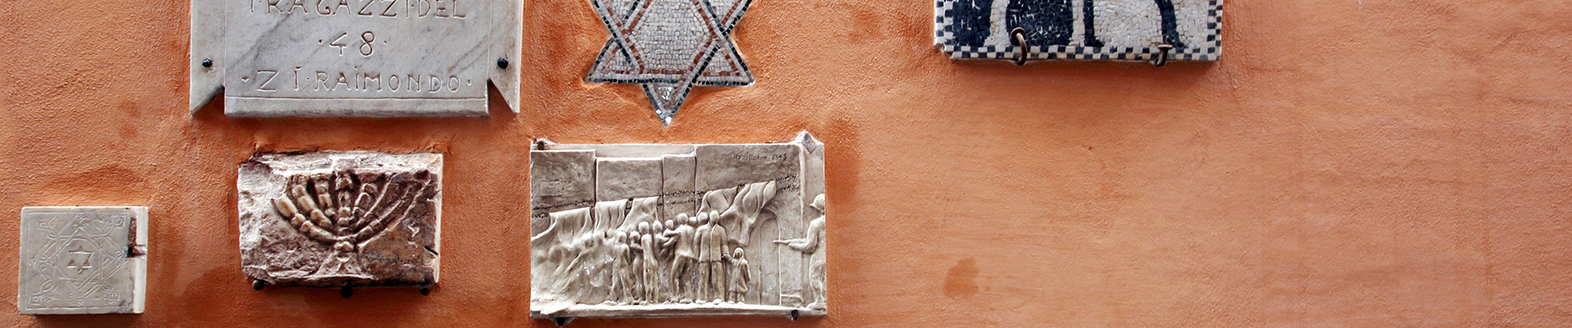 Jewish Ghetto tours in Rome by Grayline